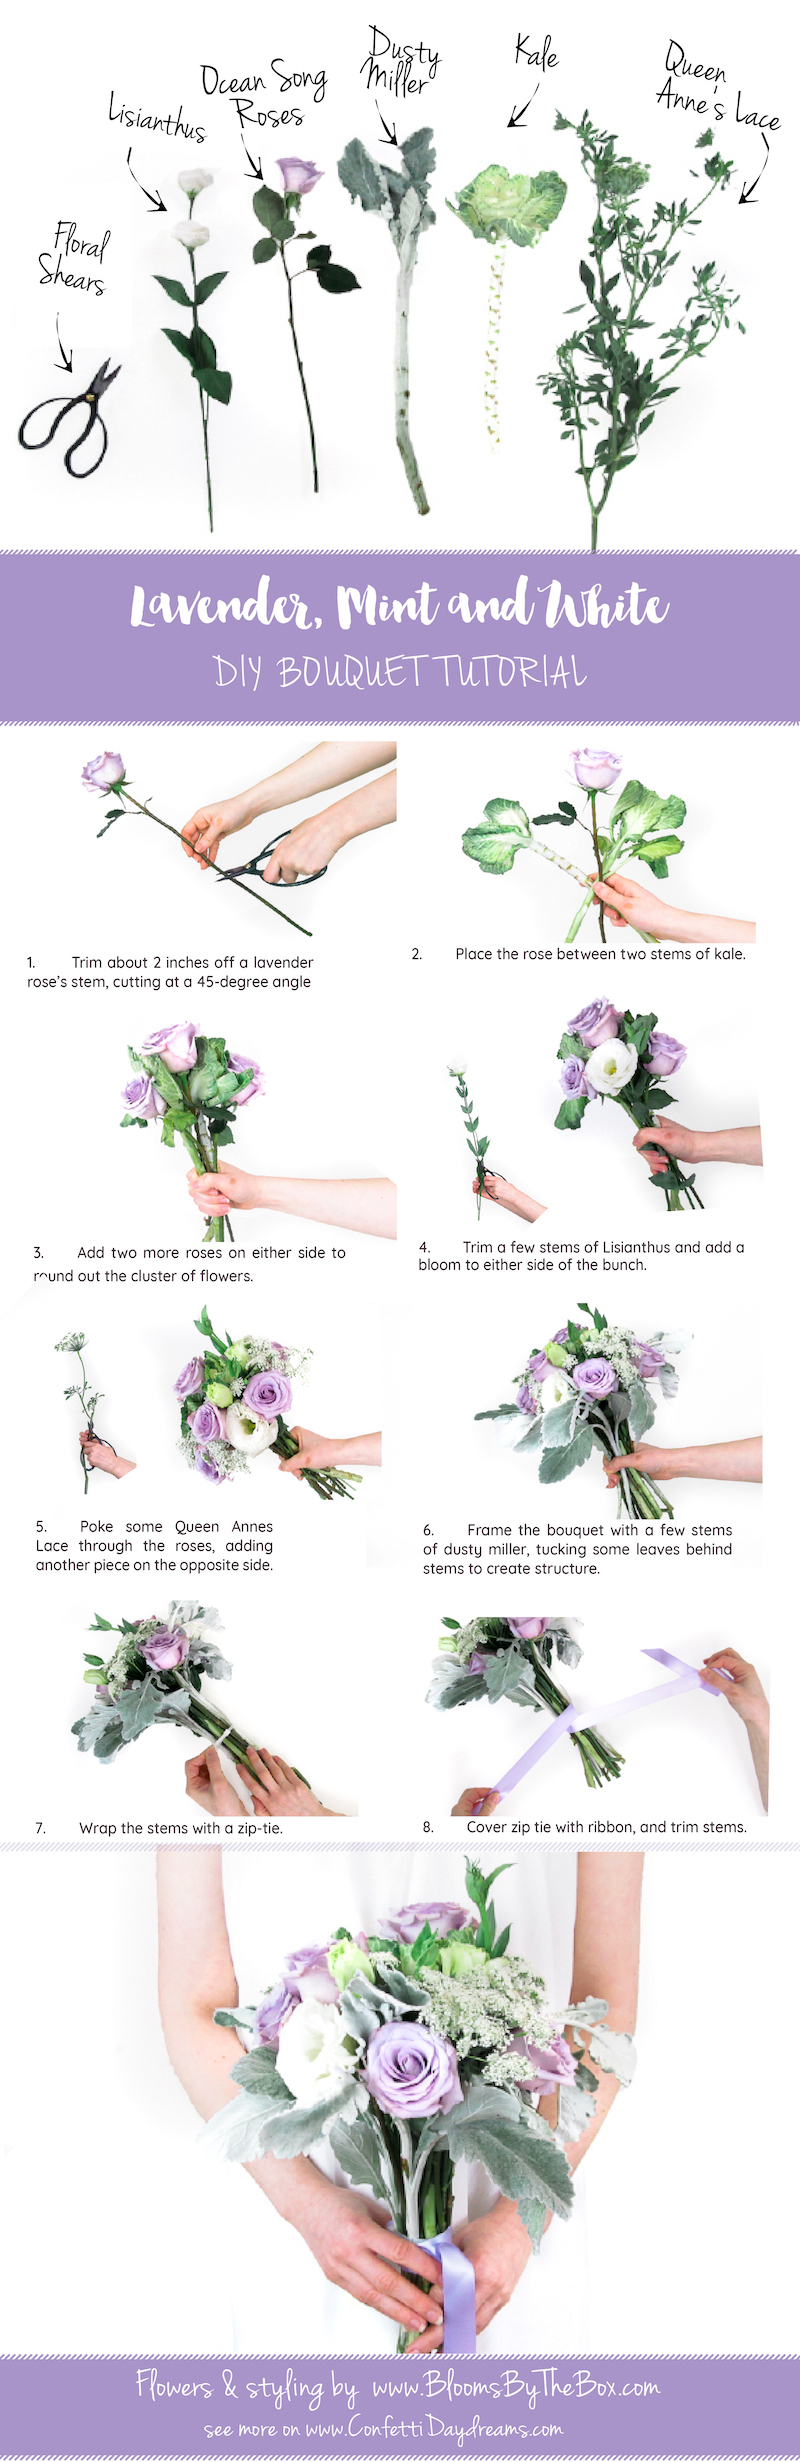 Lavender Mint and White DIY Wedding Bouquet Tutorial